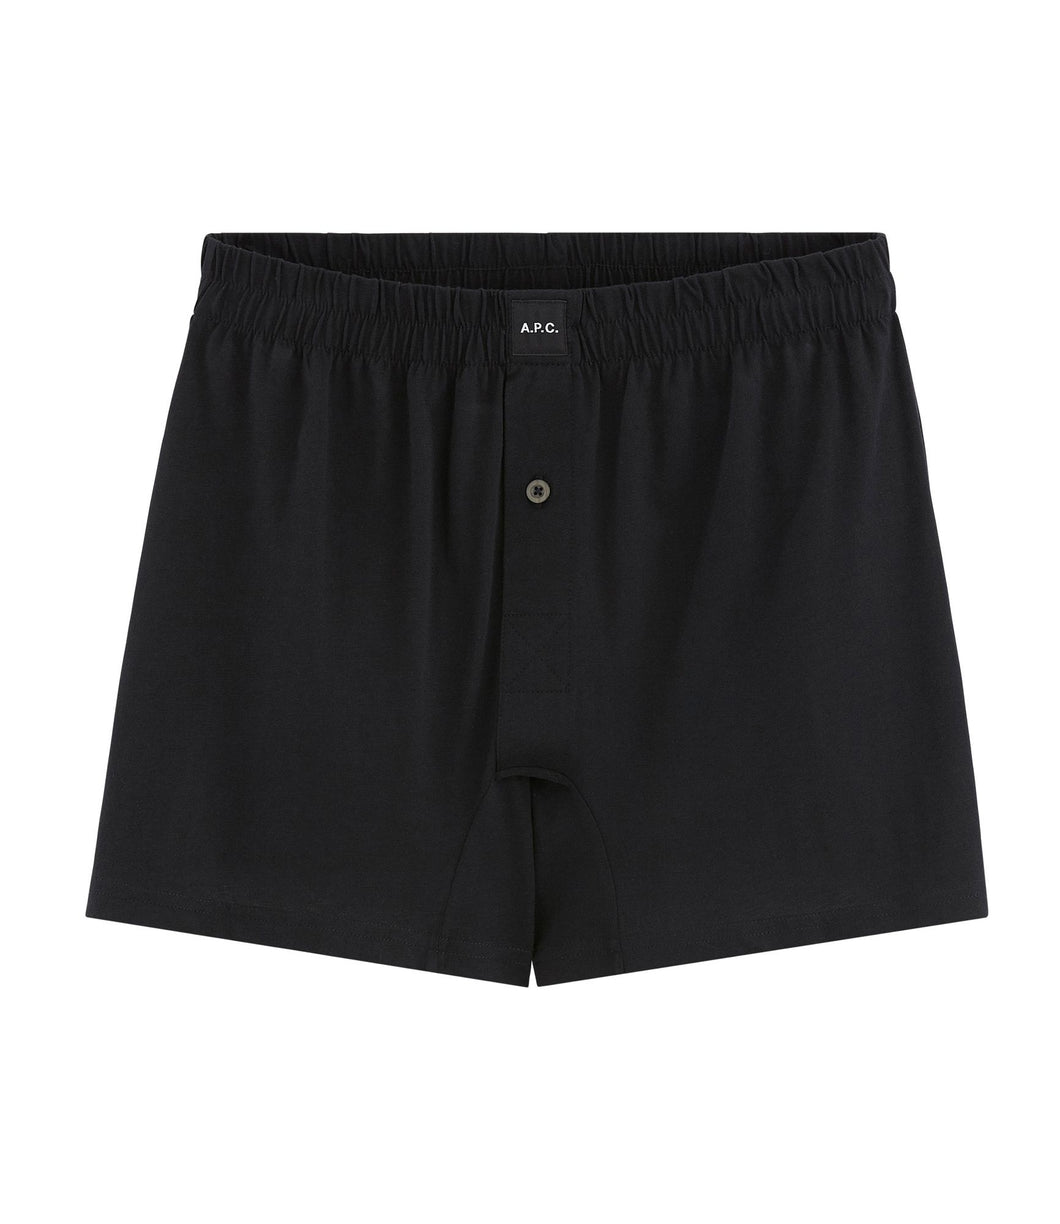 BLACK CABOURG BOXER SHORTS